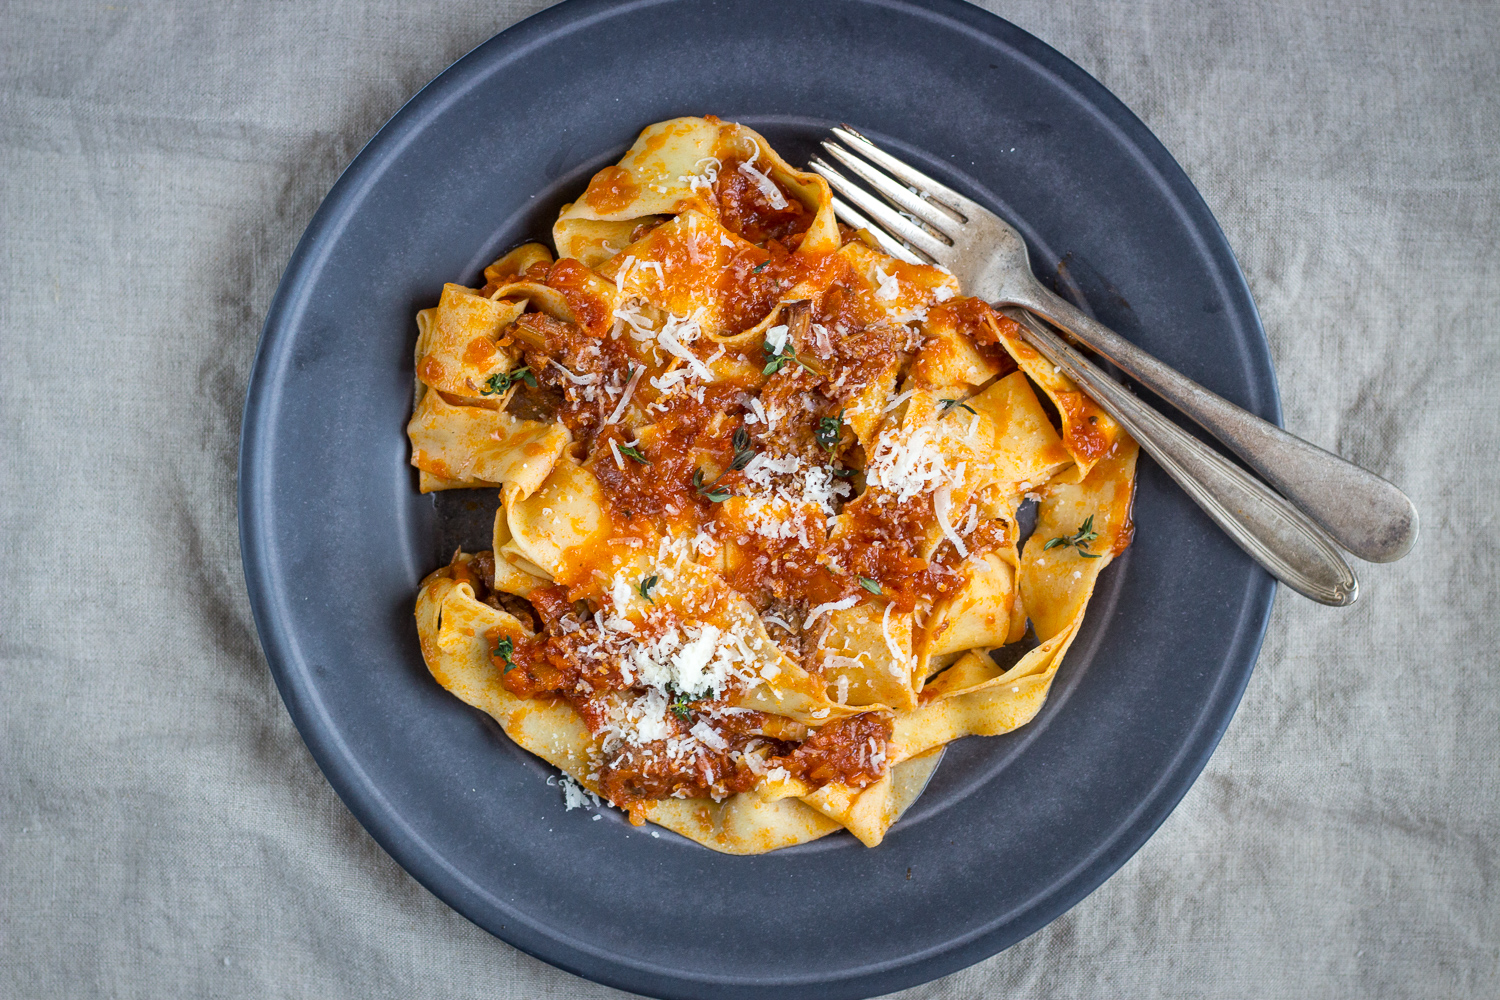 Pappardelle with Beef Short Rib Ragu